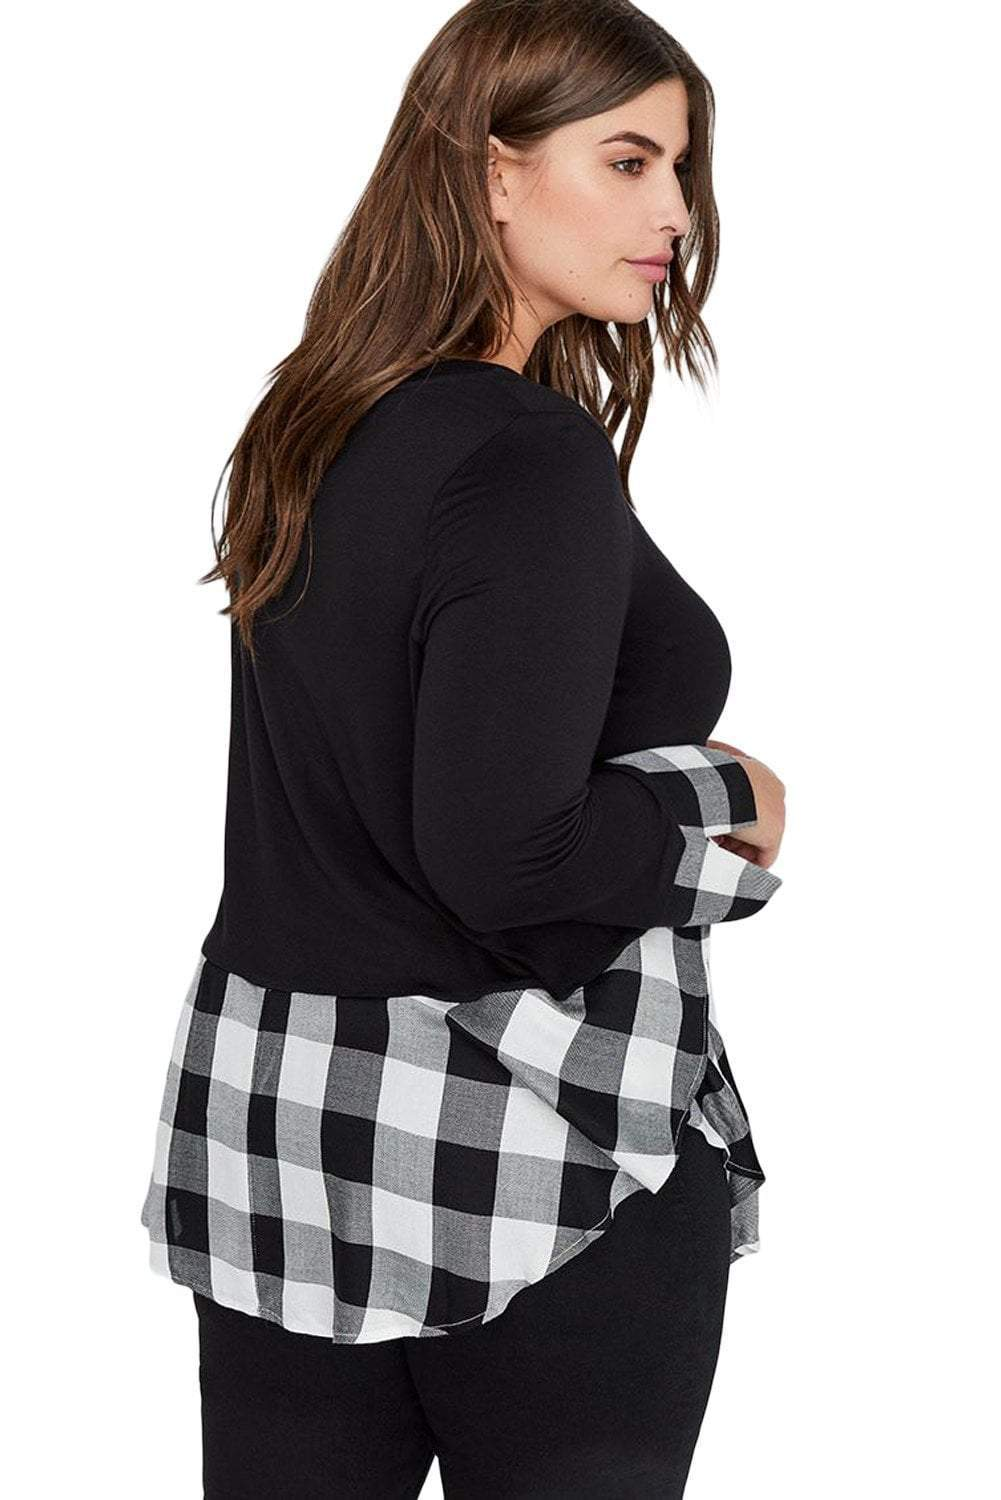 plus size Blouse & Shirt XL / AUS 14 - 16 / Black Sarah Top